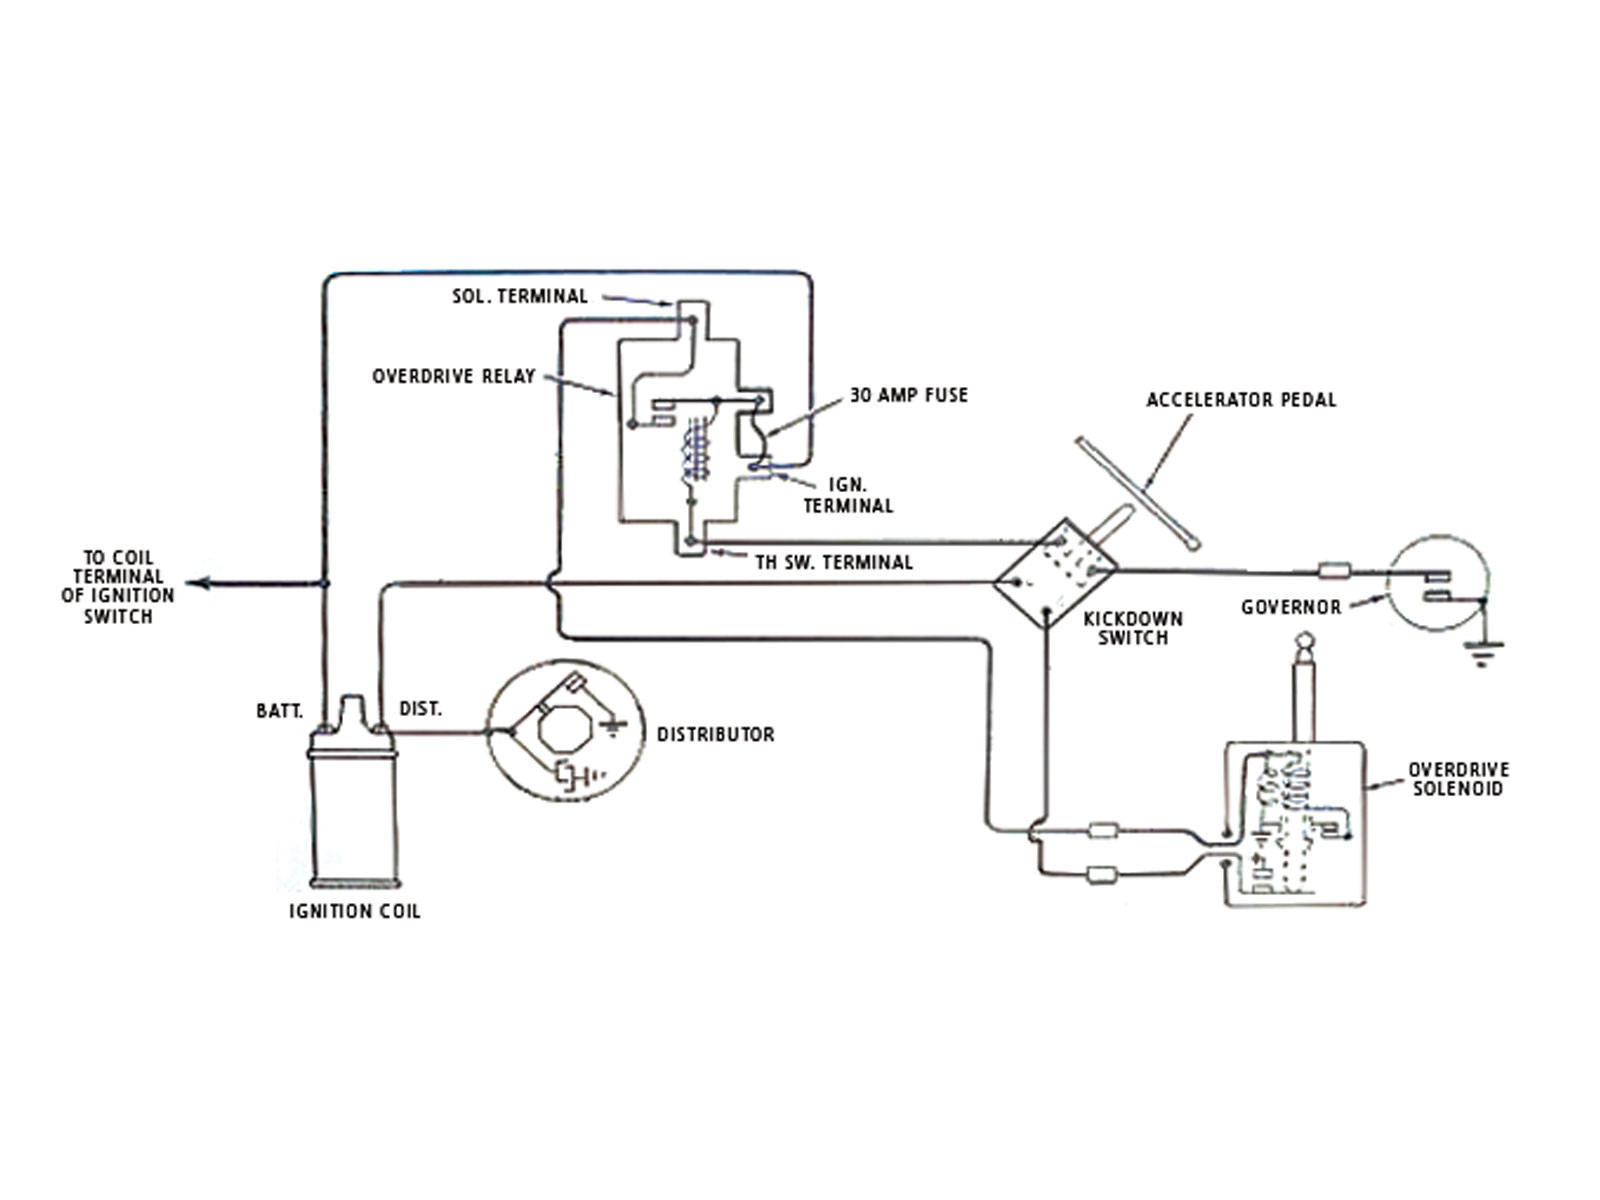 hight resolution of omron safety relay wiring diagram wiring diagram for pilz safety relay valid perfect ab safety